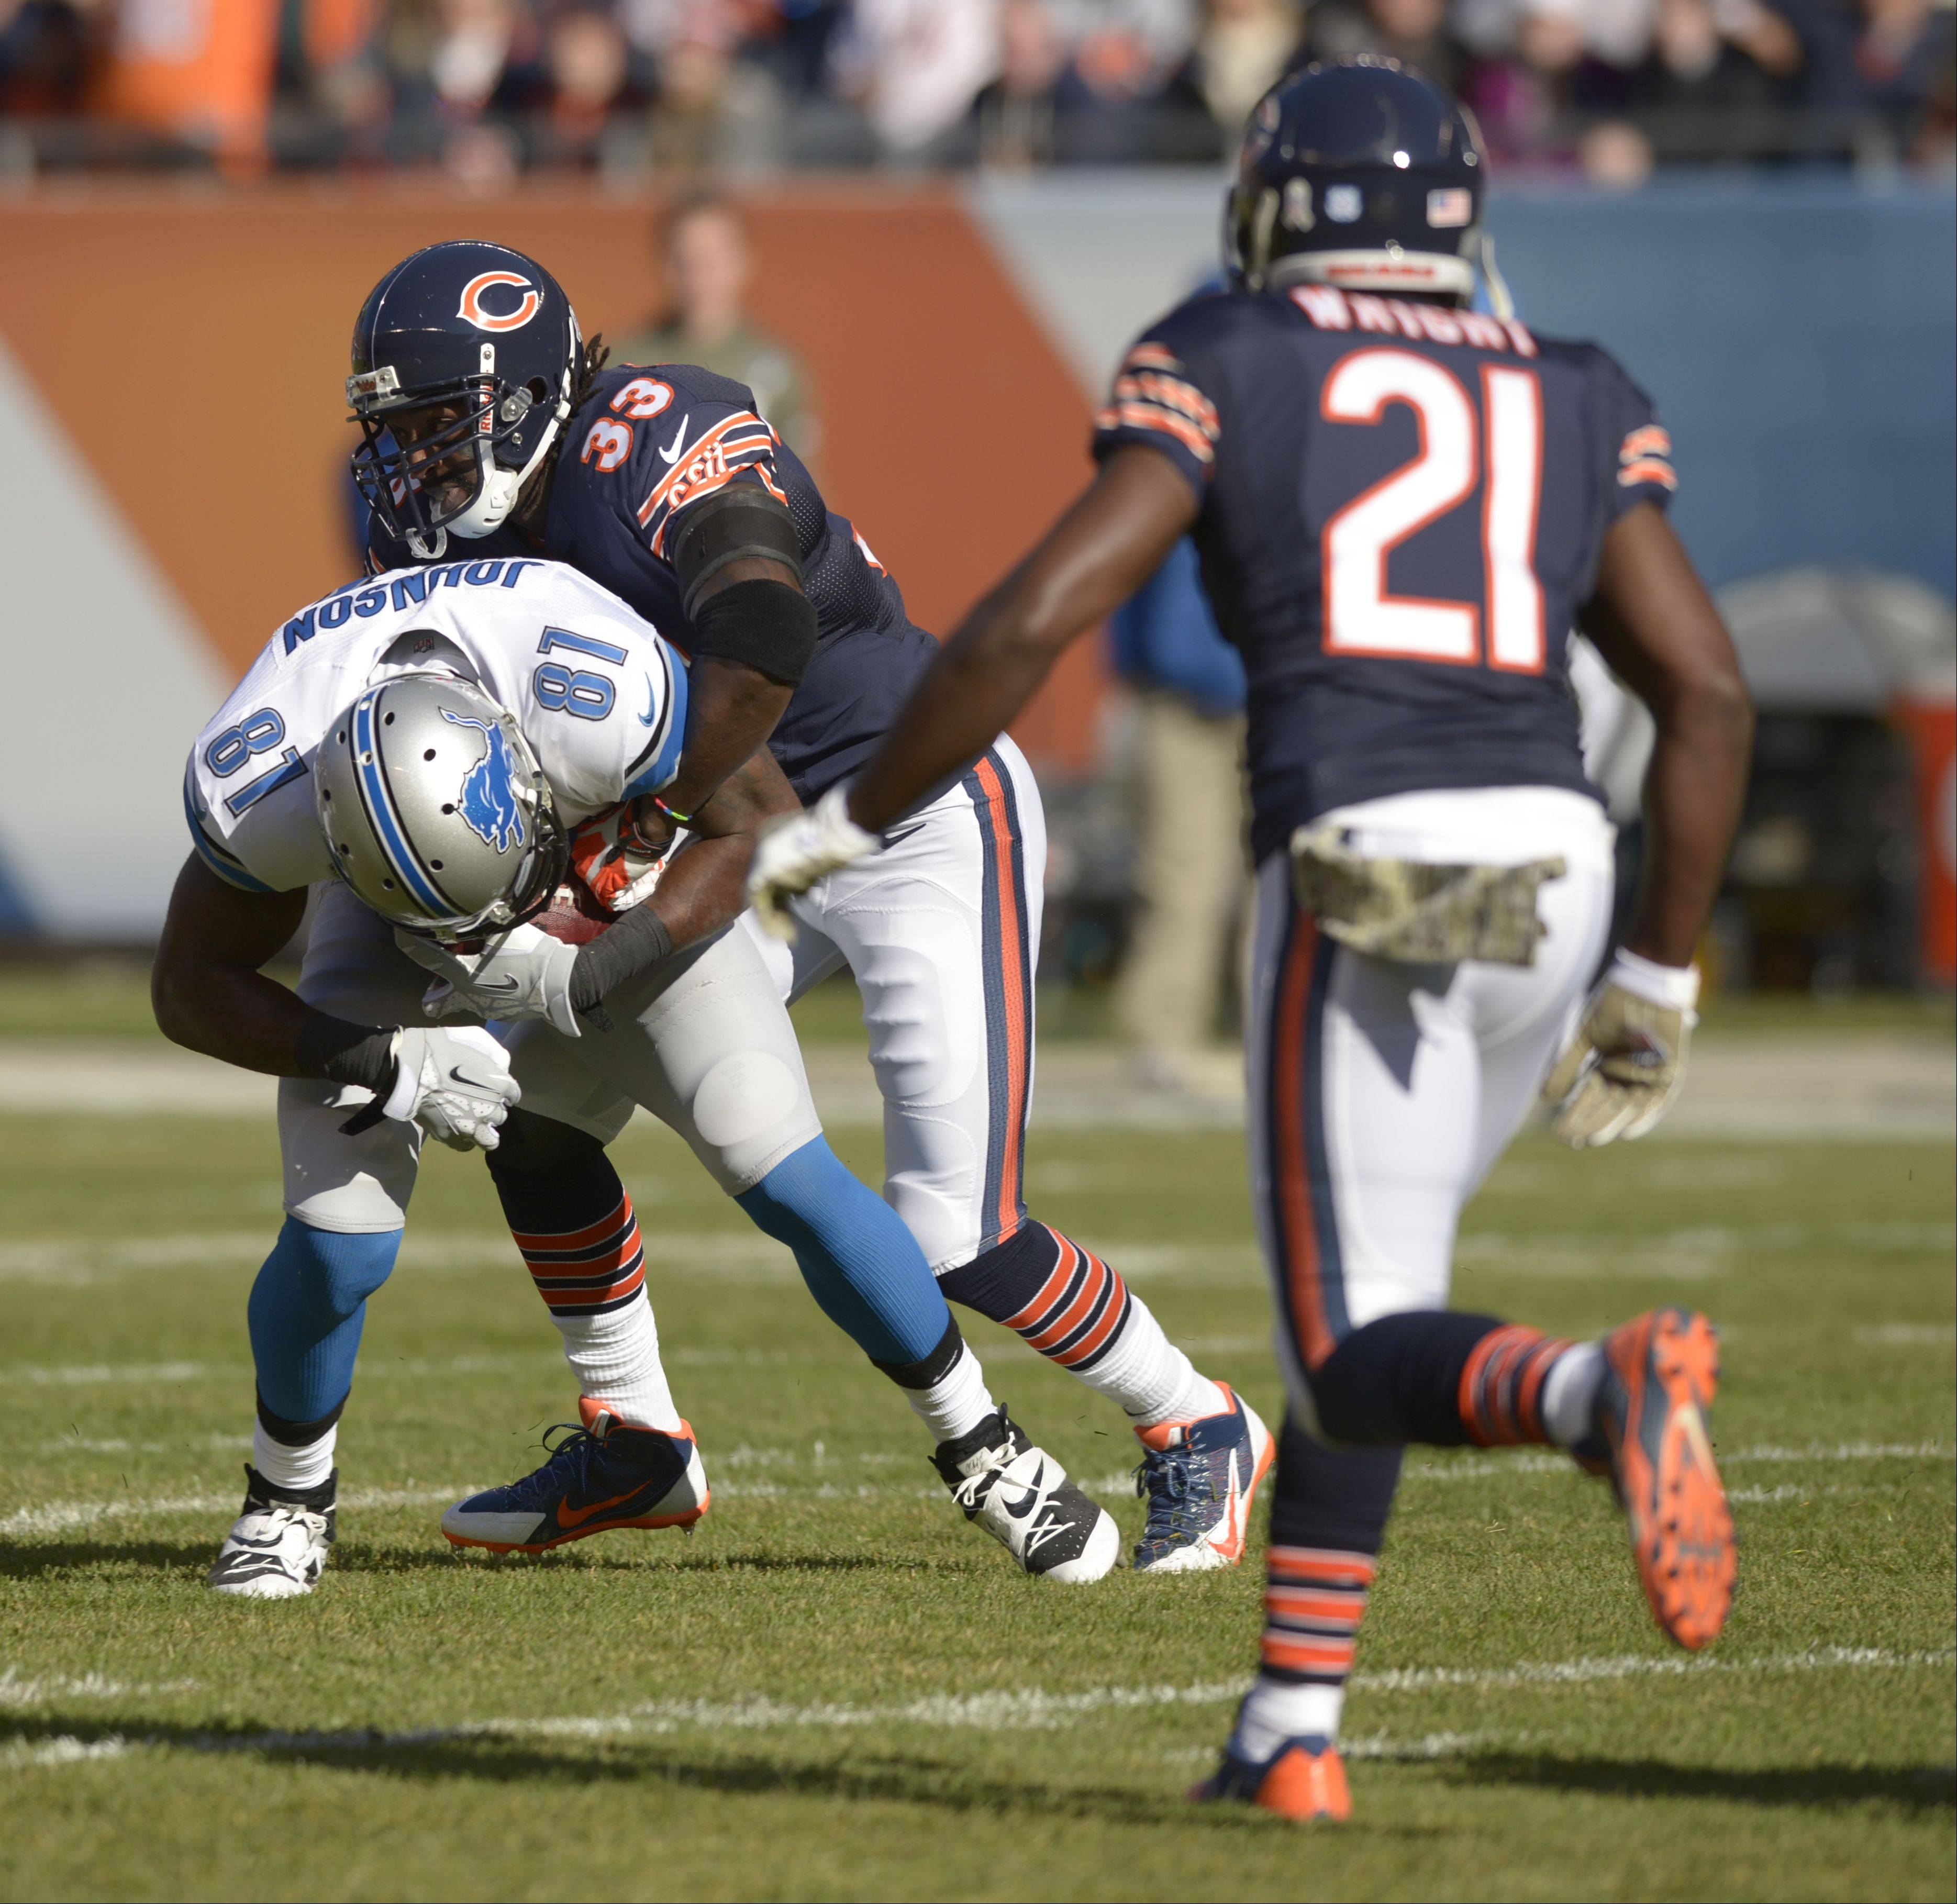 Bears' Tillman out for season; Cutler out Sunday